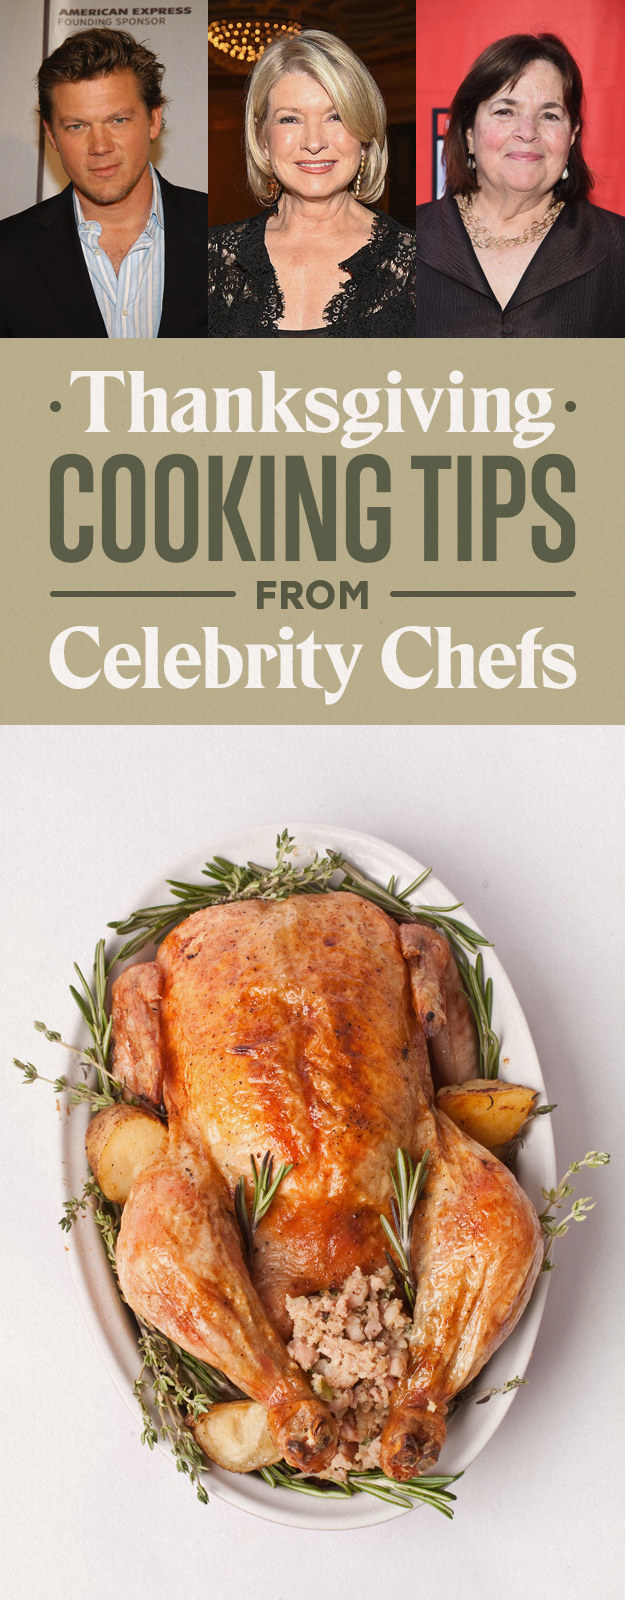 12 Genius Thanksgiving Cooking Tips From Celebrity Chefs by